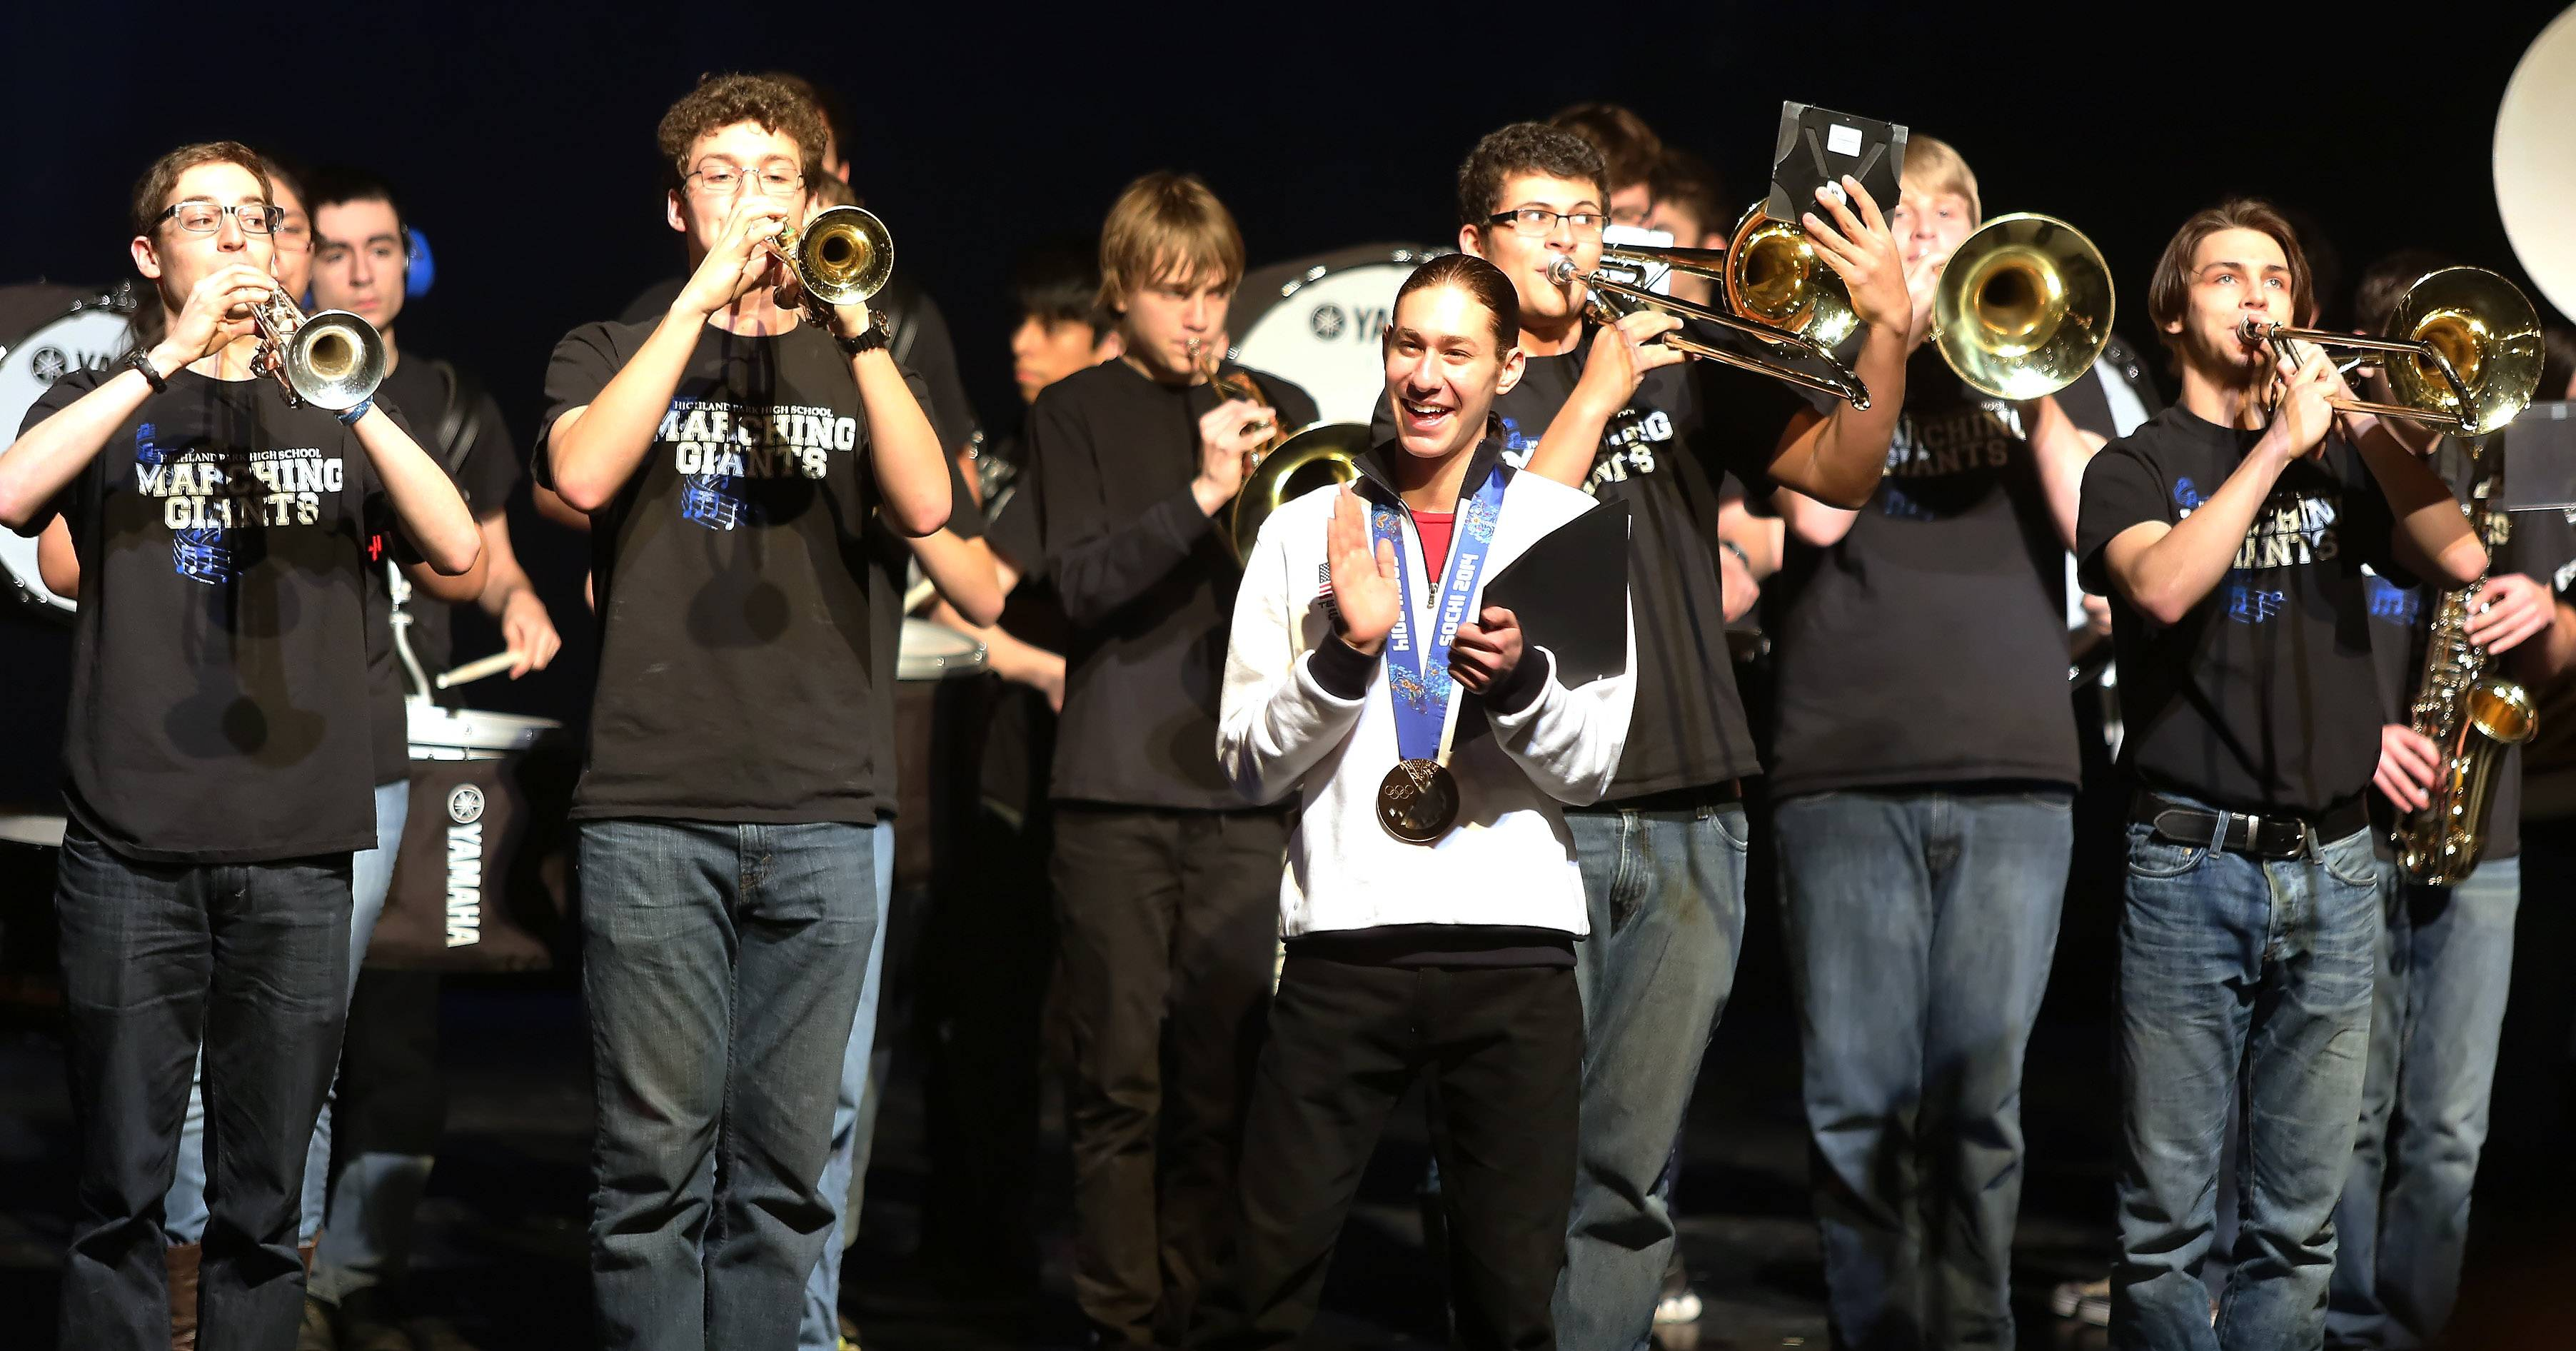 Highland Park High School's marching band plays behind Olympic figure skater Jason Brown, who was welcomed home in a ceremony Tuesday. Brown won a bronze medal in team figure skating at the 2014 Sochi Winter Olympics.